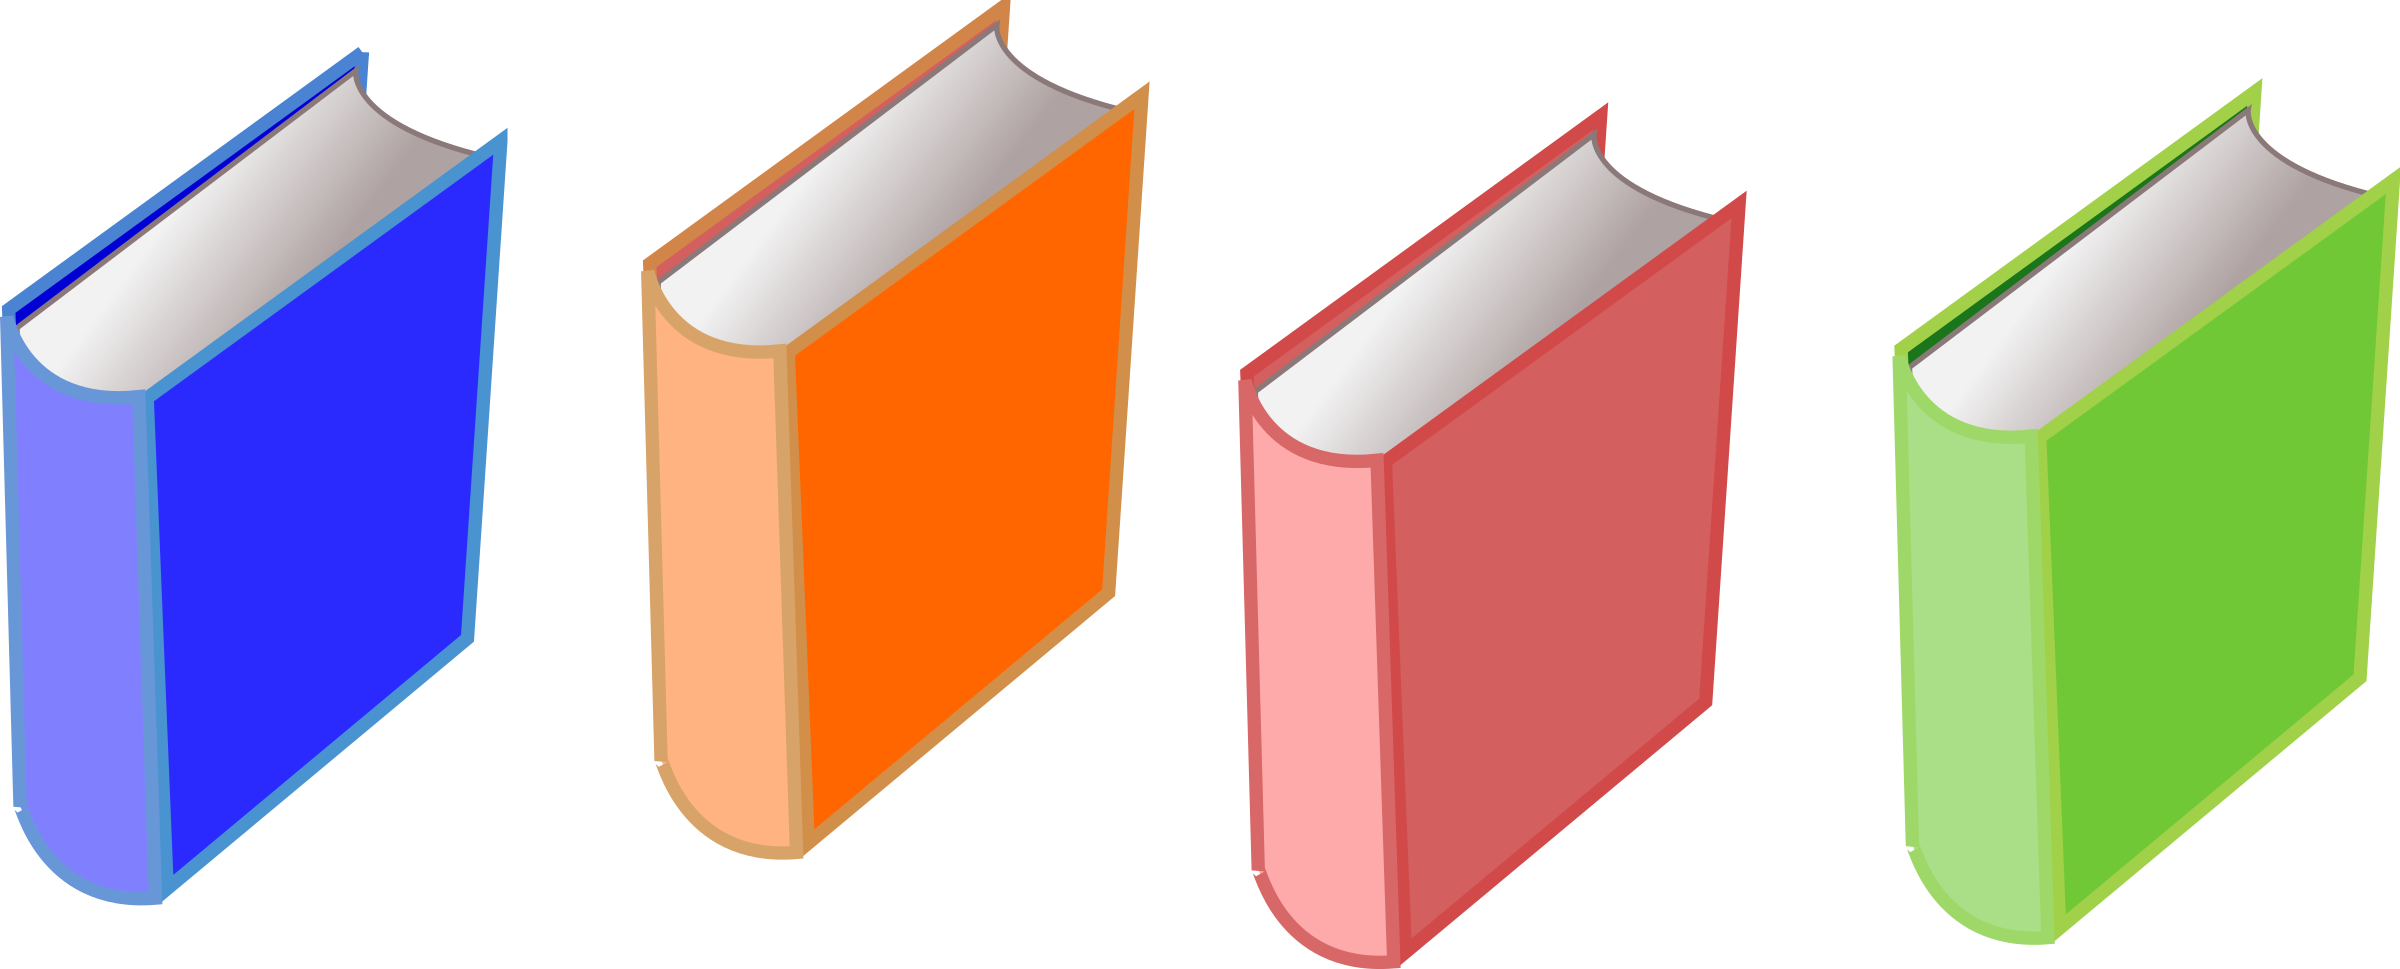 Books of big image. 4 clipart object